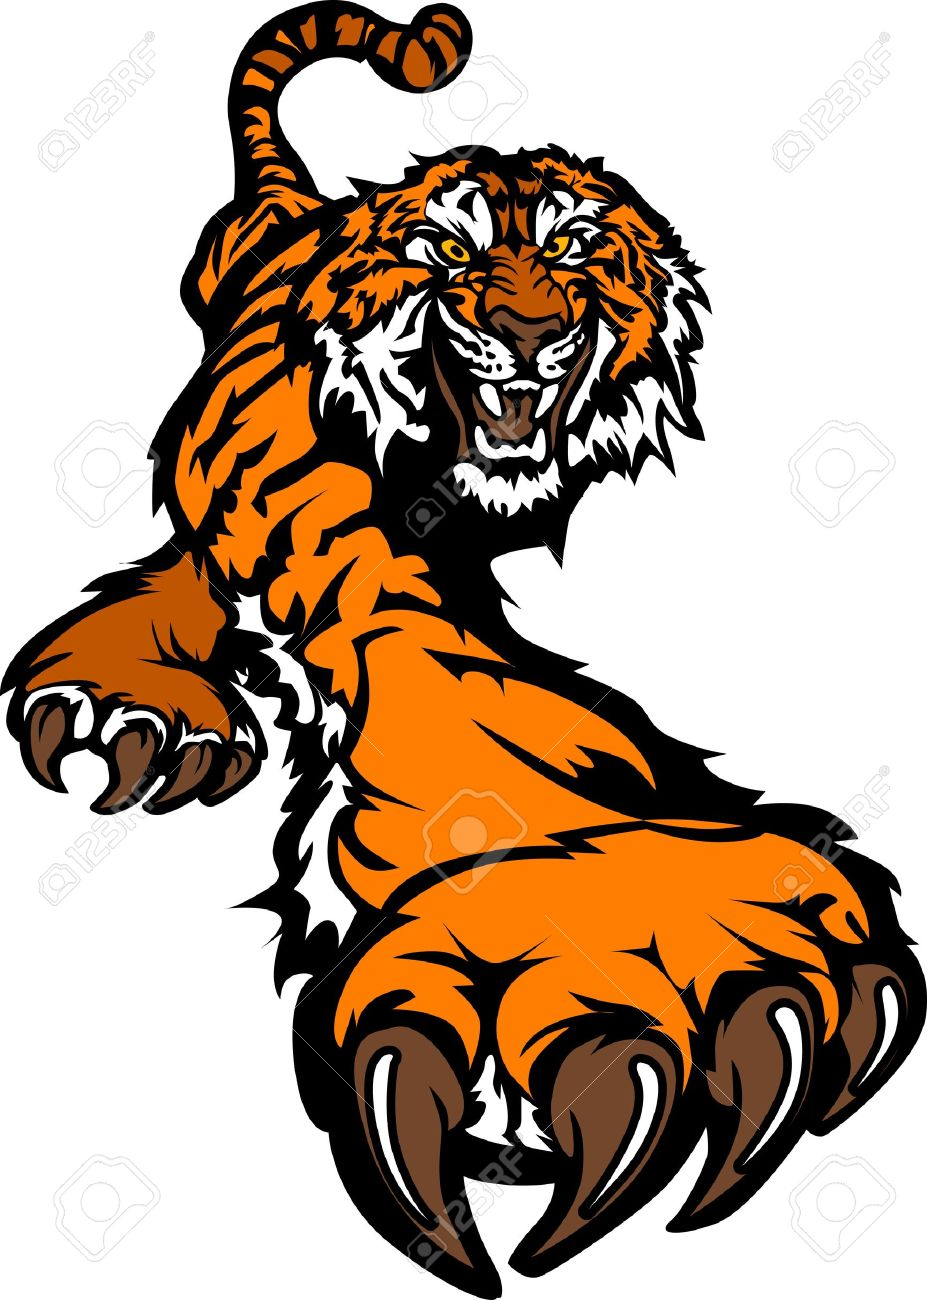 Tiger Mascot Body Prowling Graphic Stock Vector - 10313175